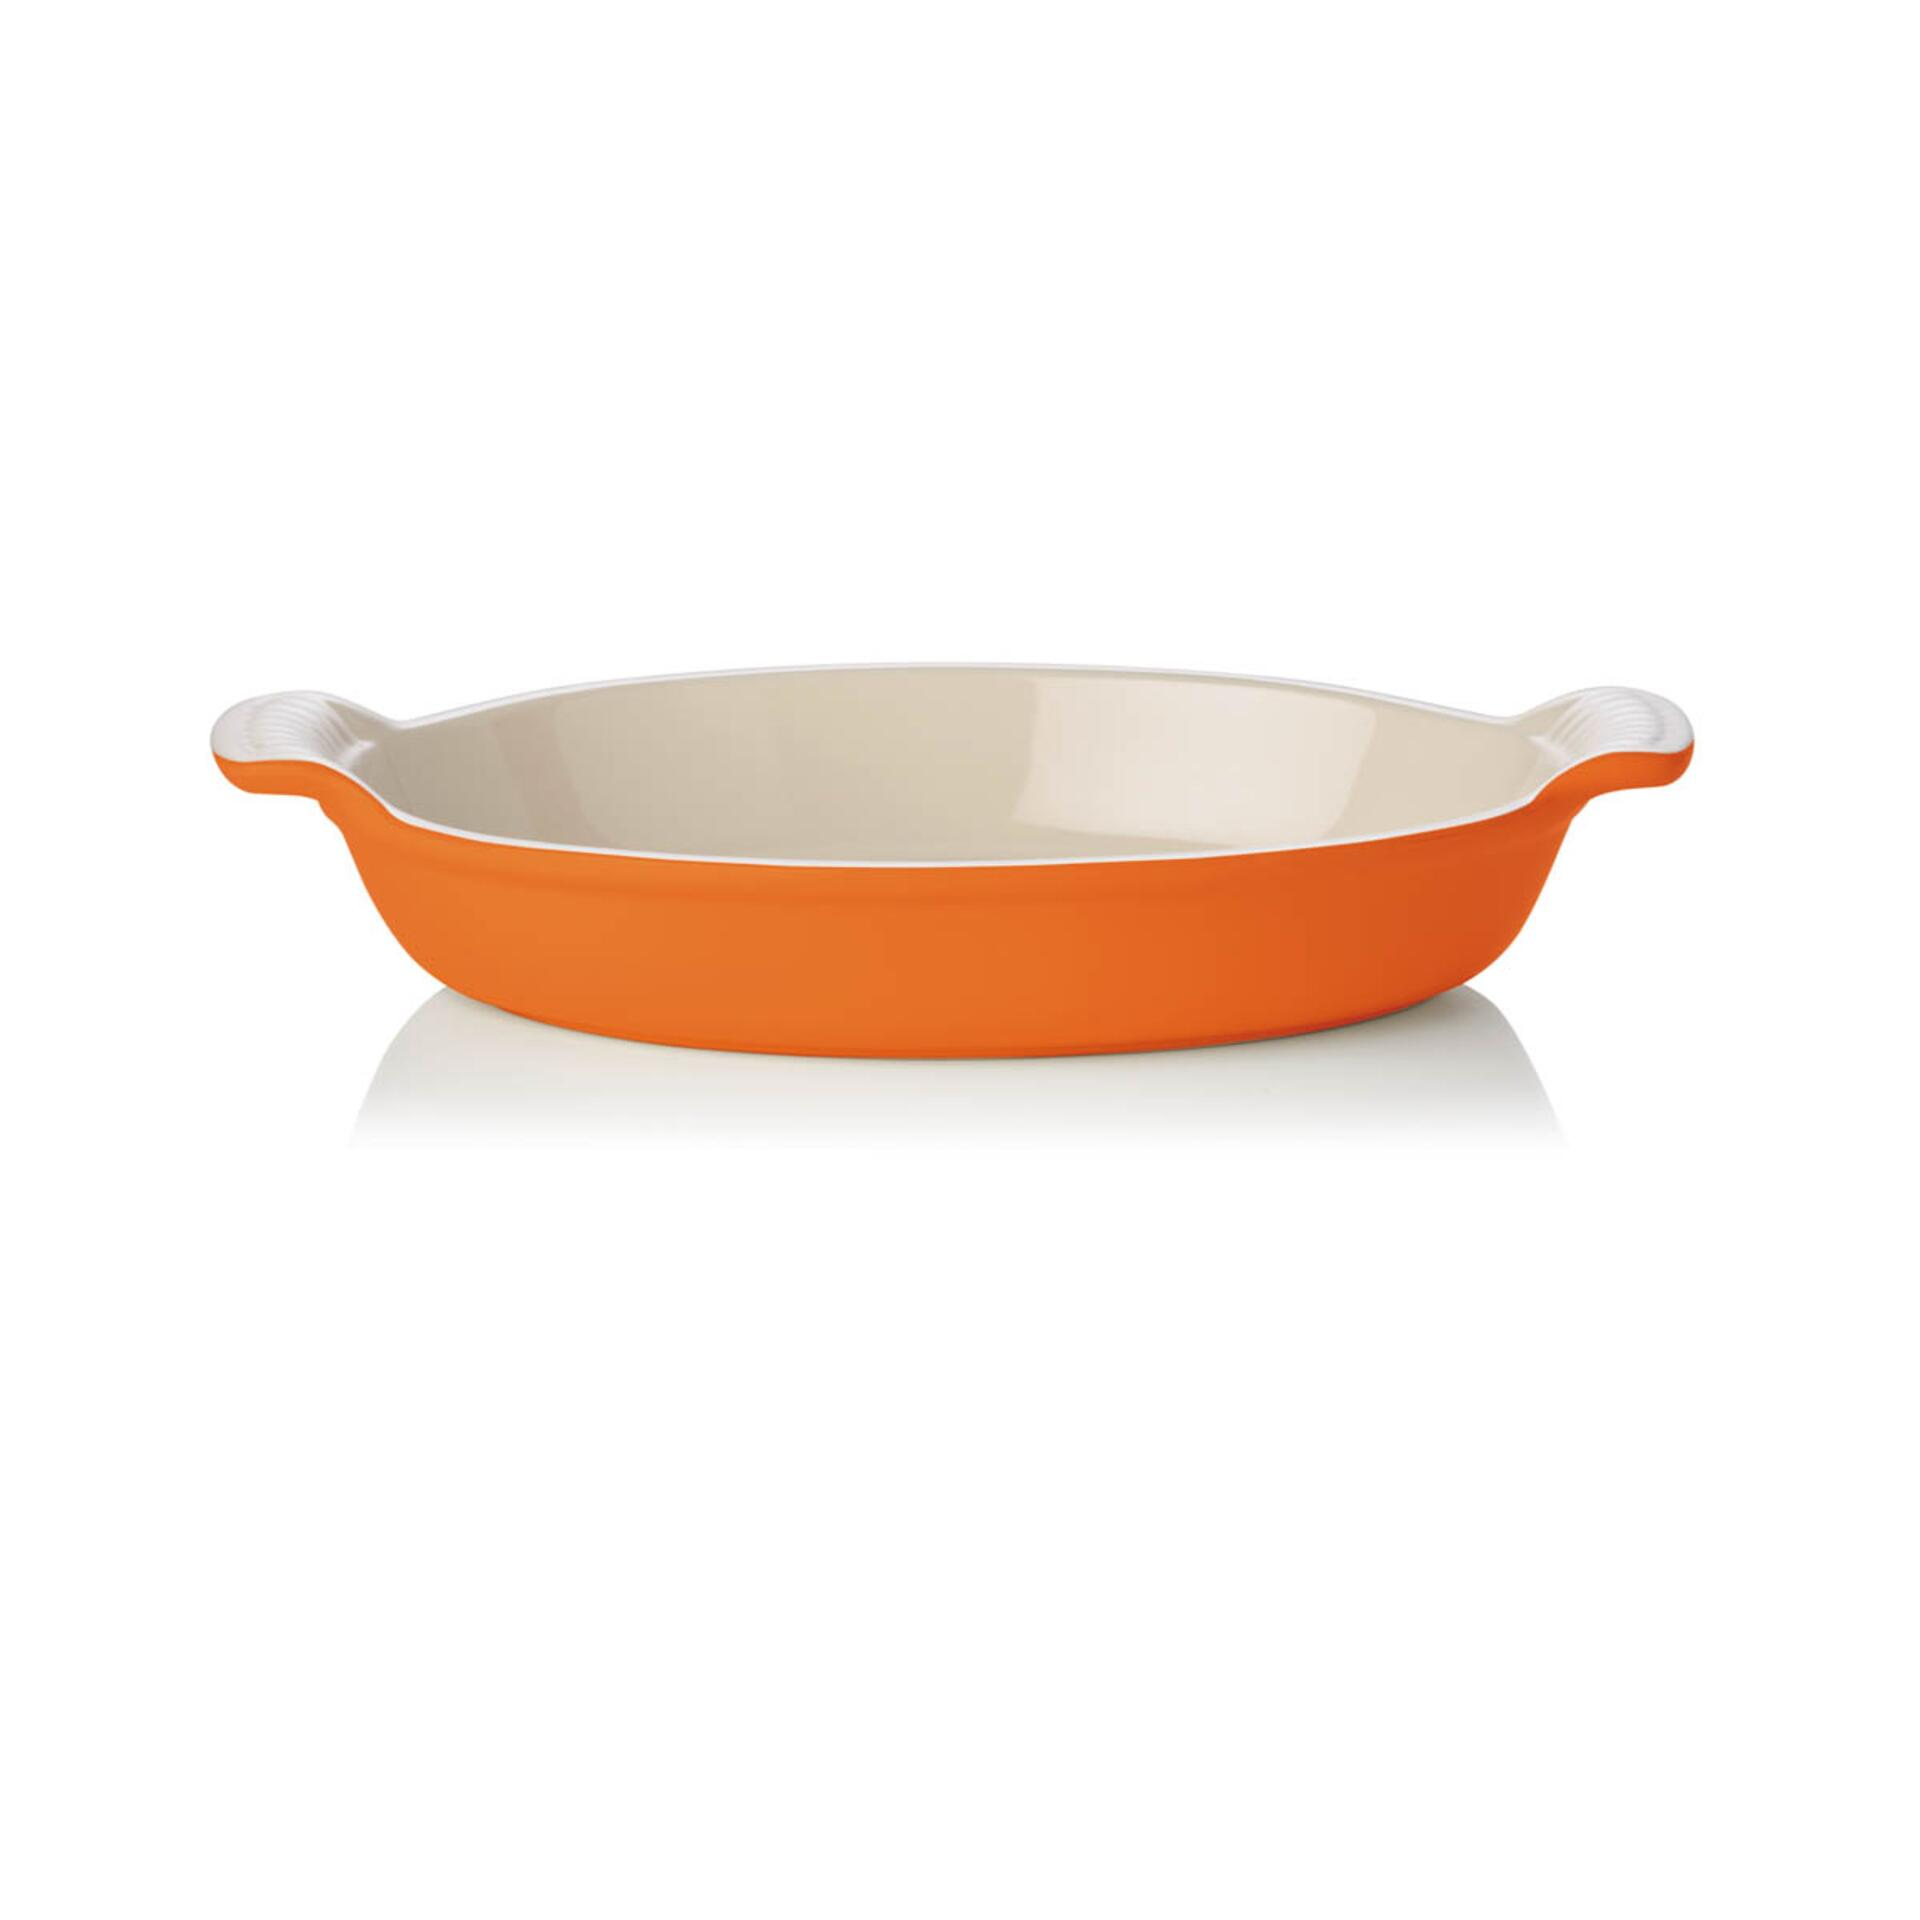 Le Creuset Auflaufform Tradition oval 28 cm Ofenrot